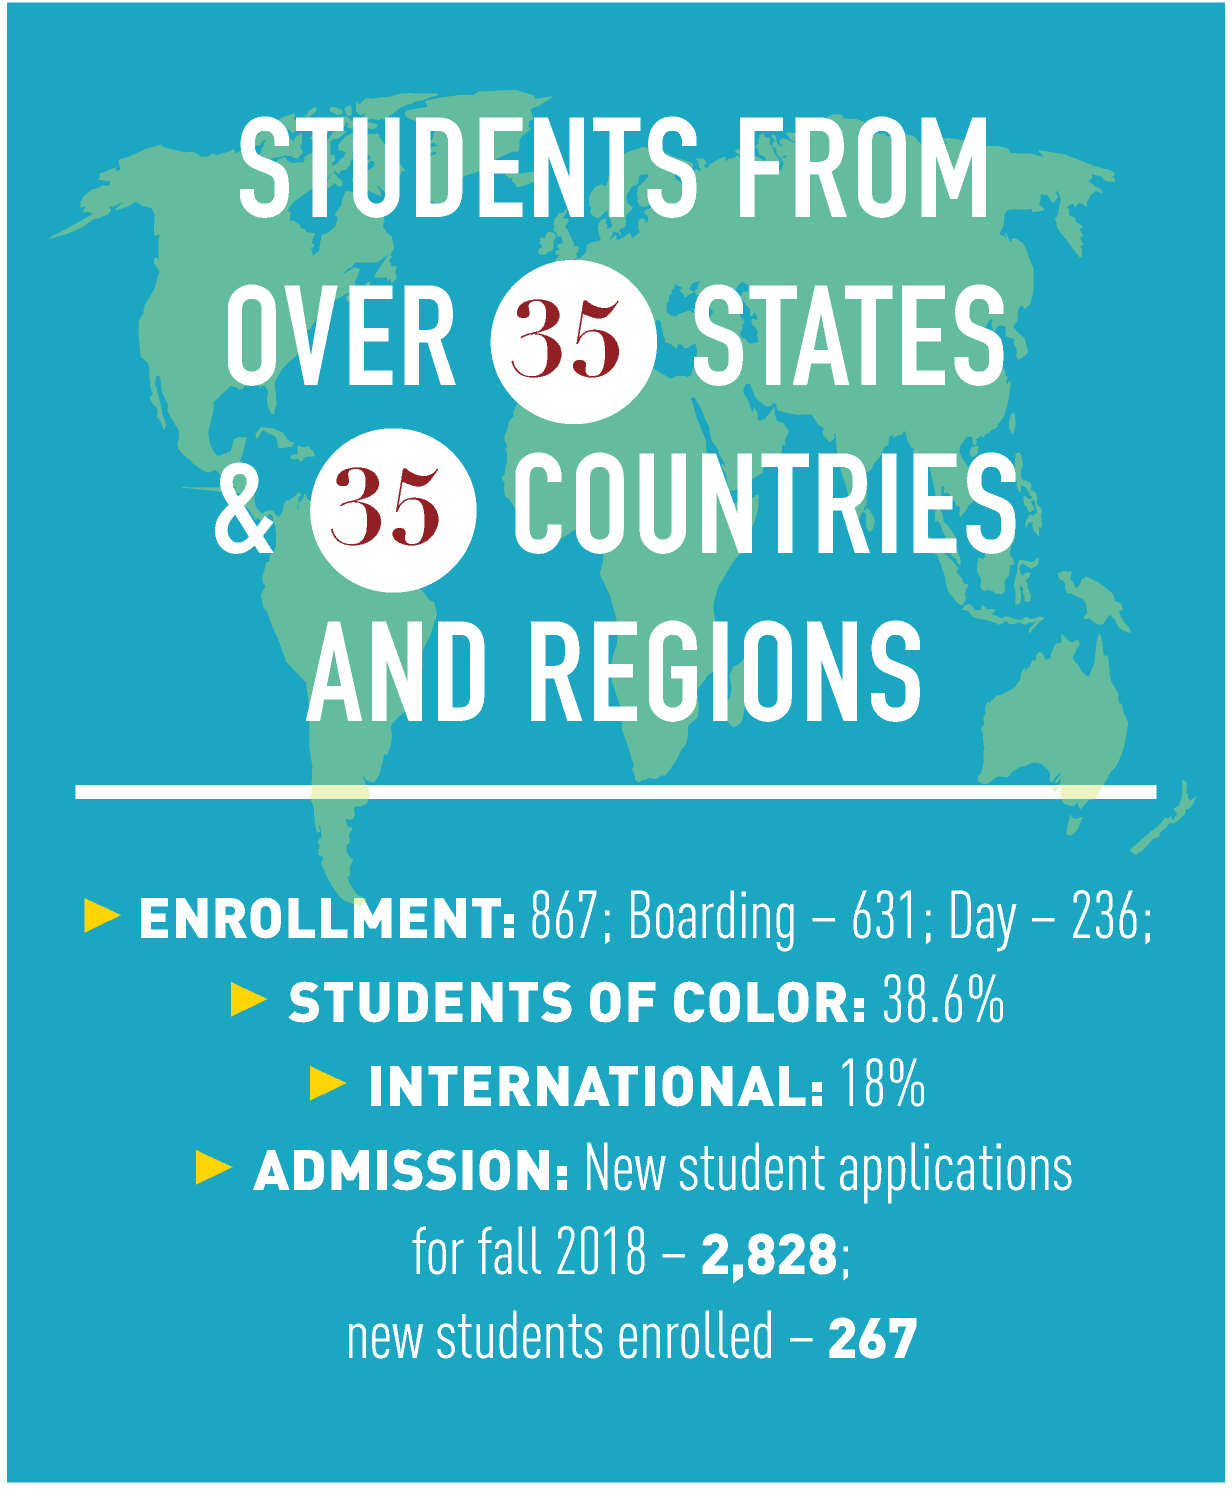 Students from over 38 states and 46 countries and regions